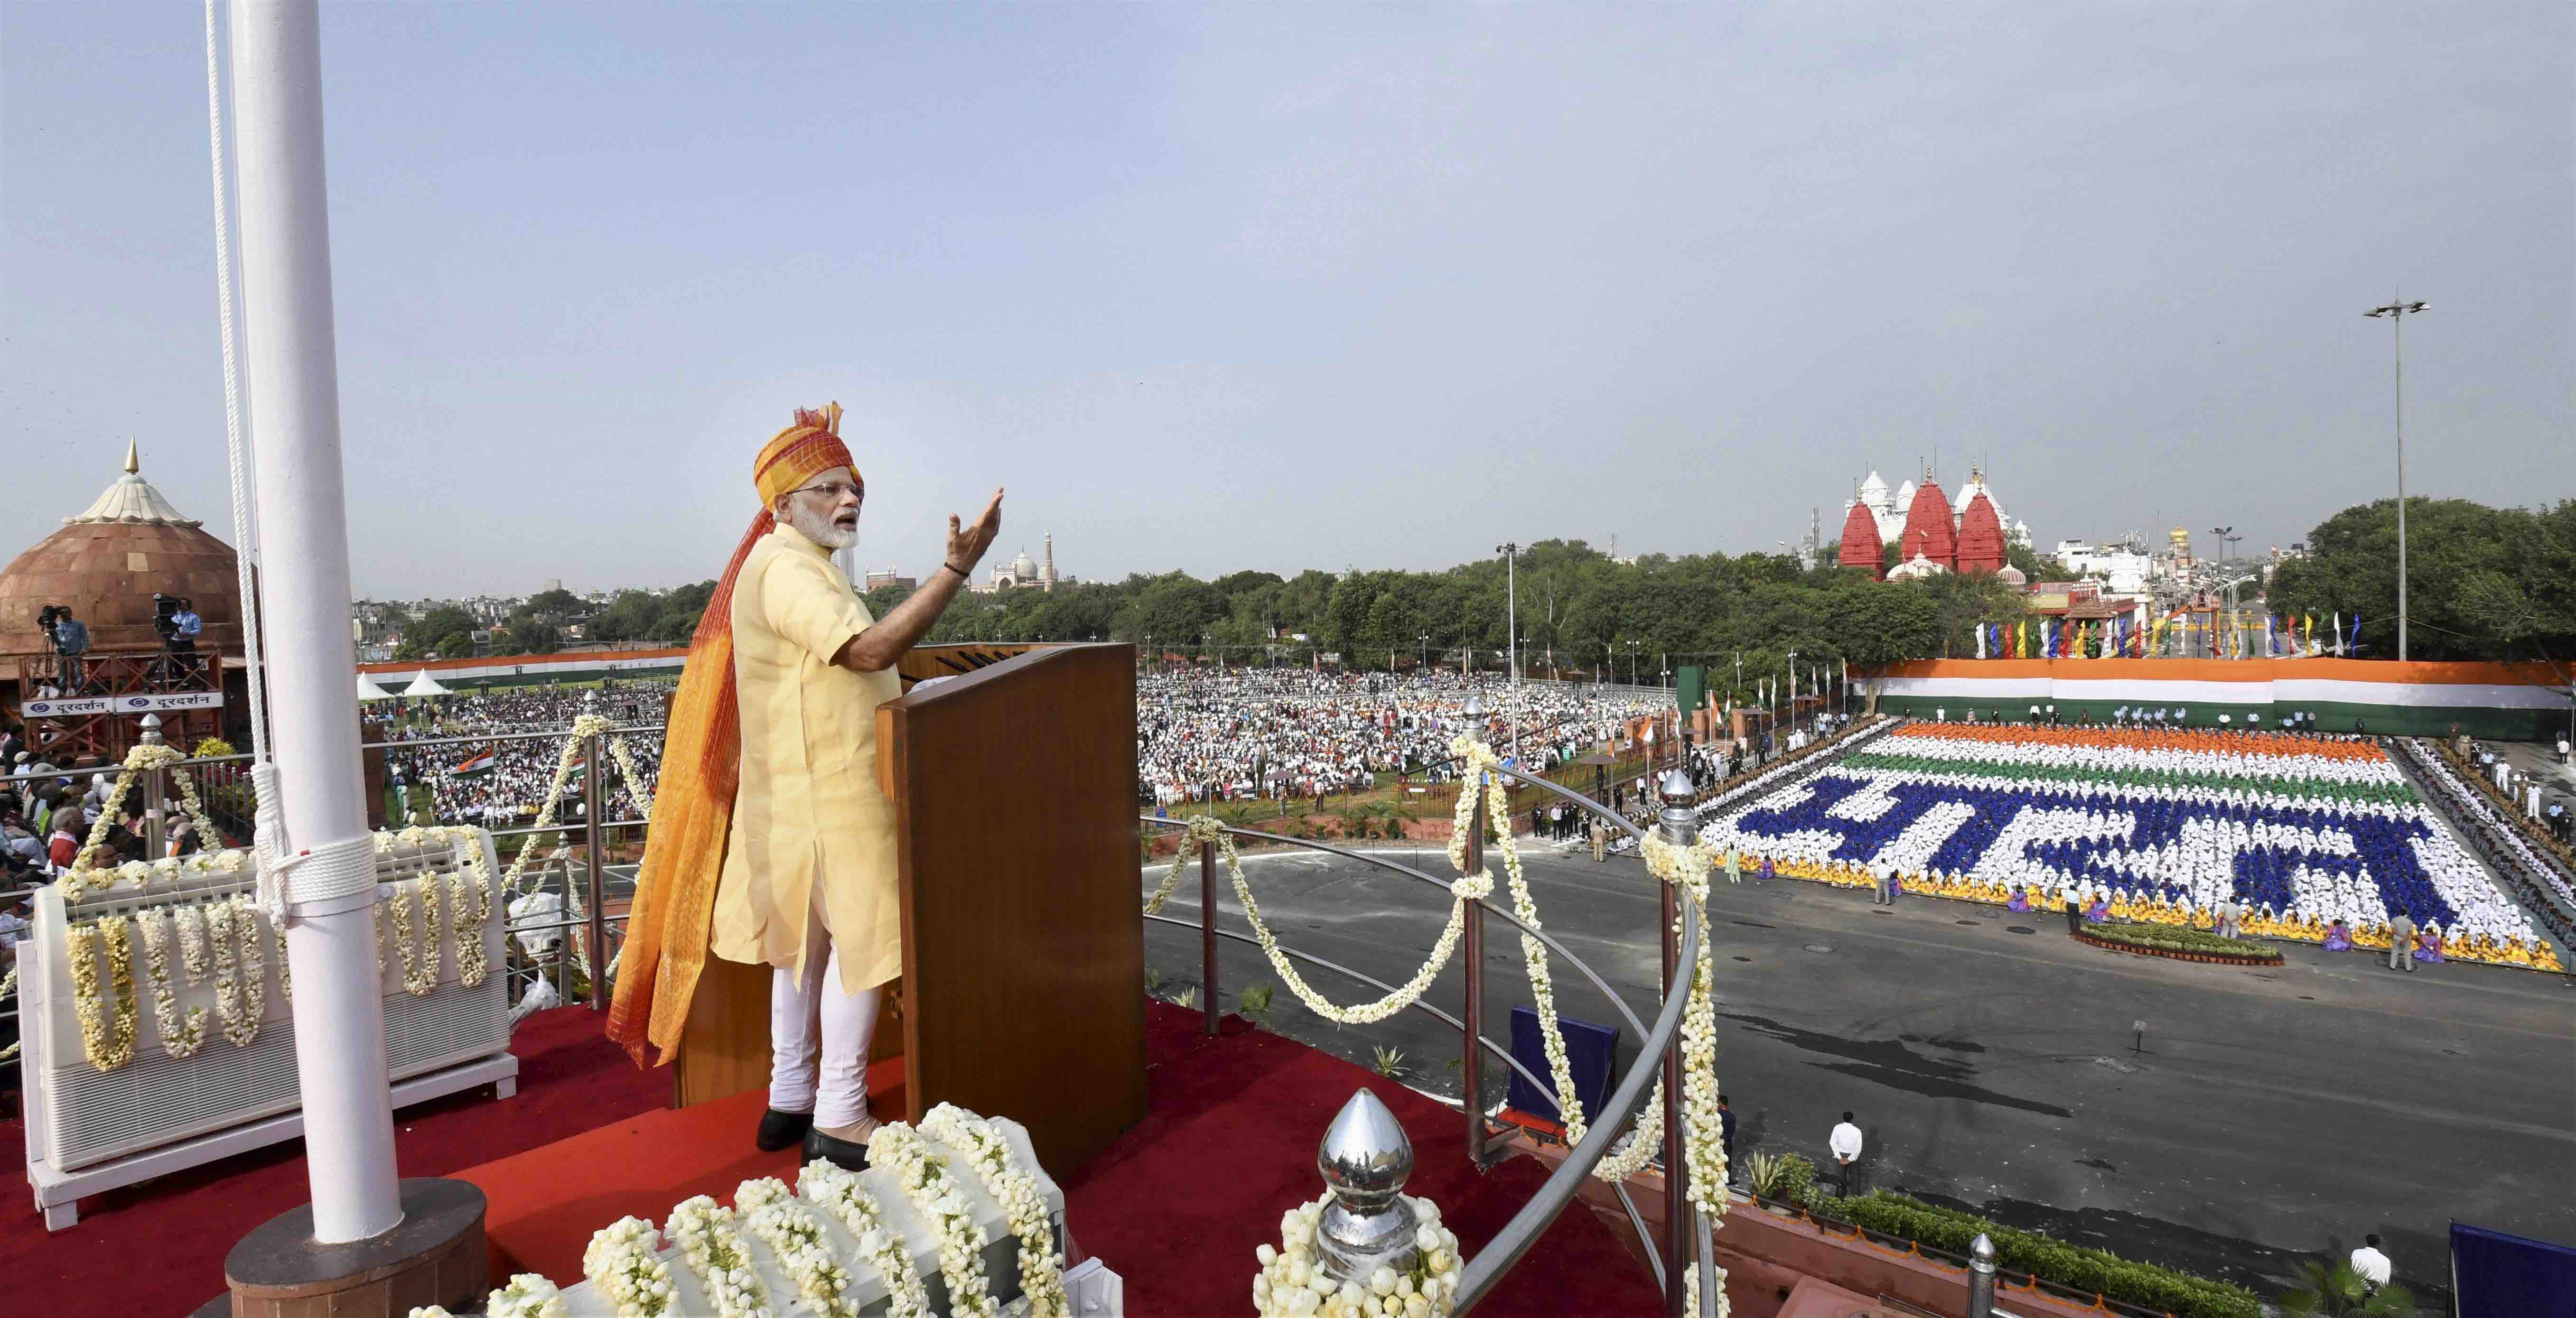 In I-Day Speech, Modi Talks About 'Natural Calamity' at Gorakhpur, Security Challenges and More